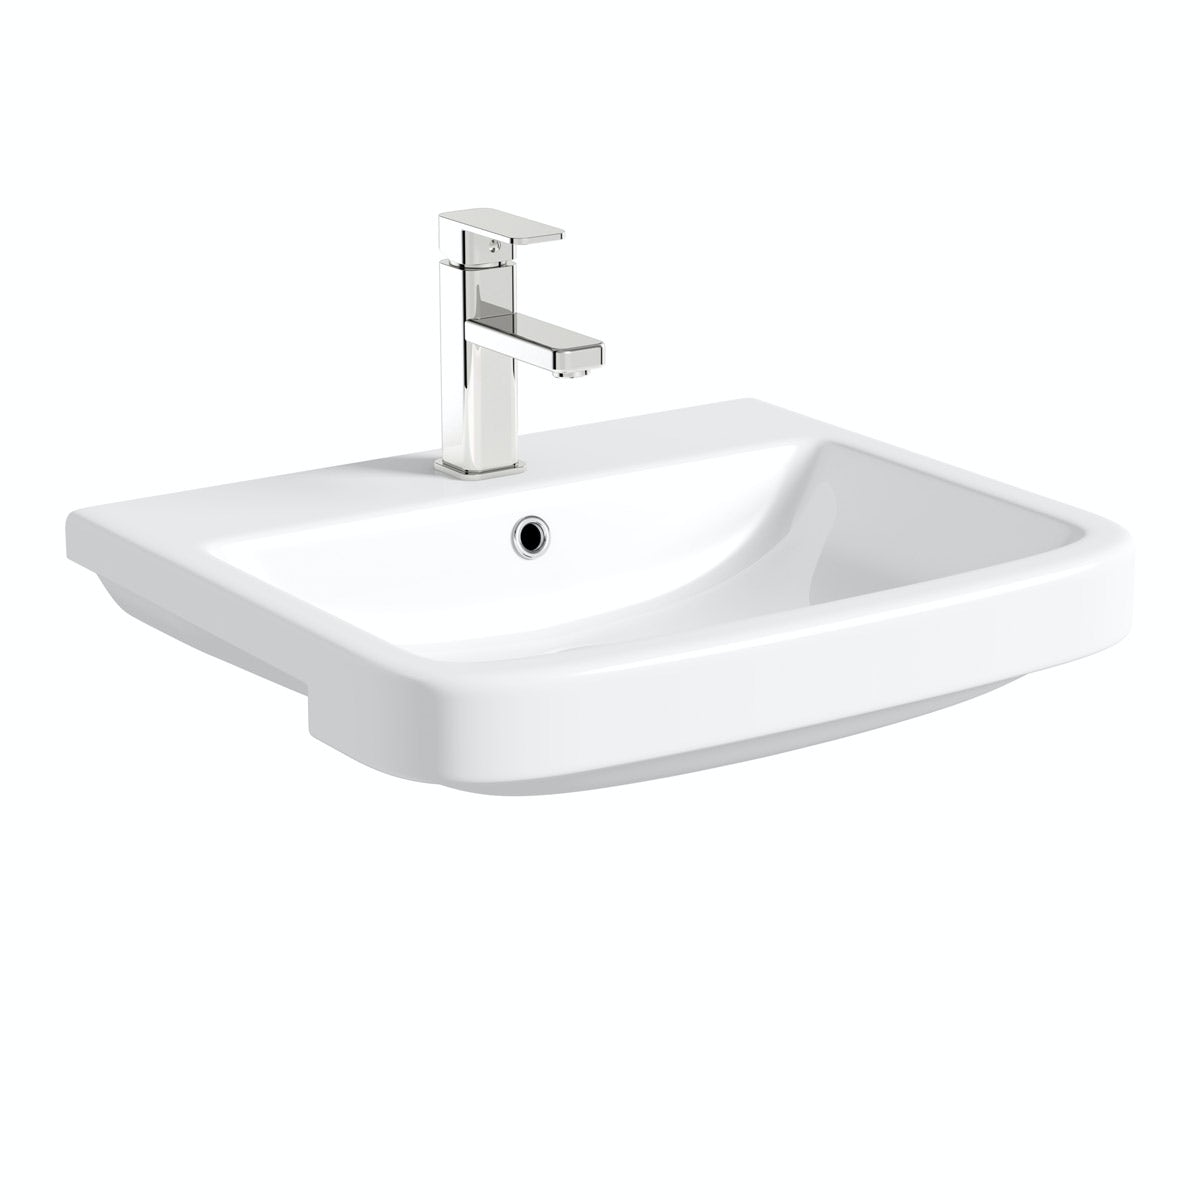 Mode Carter semi recessed basin 550mm with waste